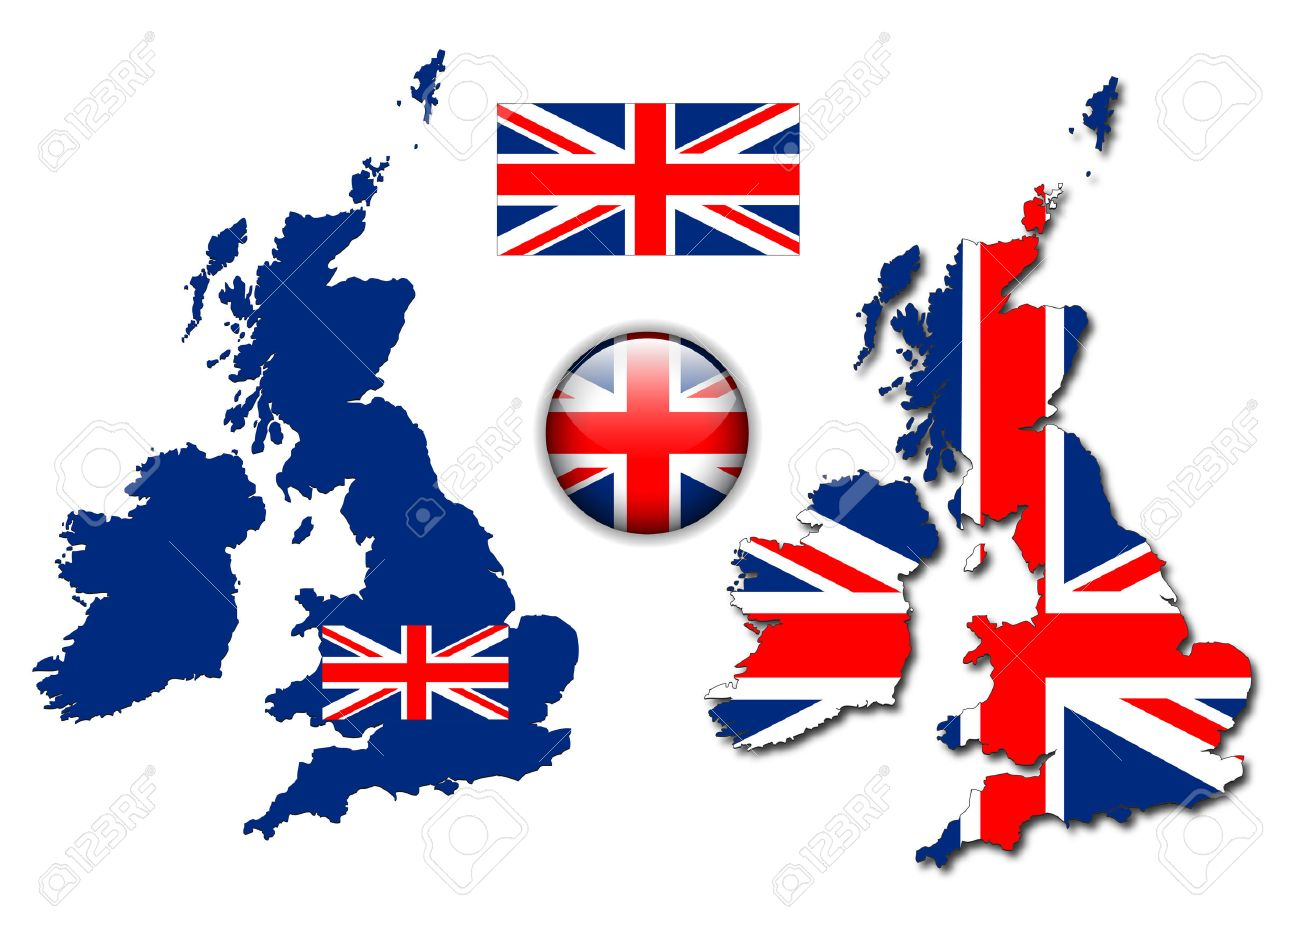 United Kingdom, England flag, map and glossy button, illustration set. Stock Vector - 6596789